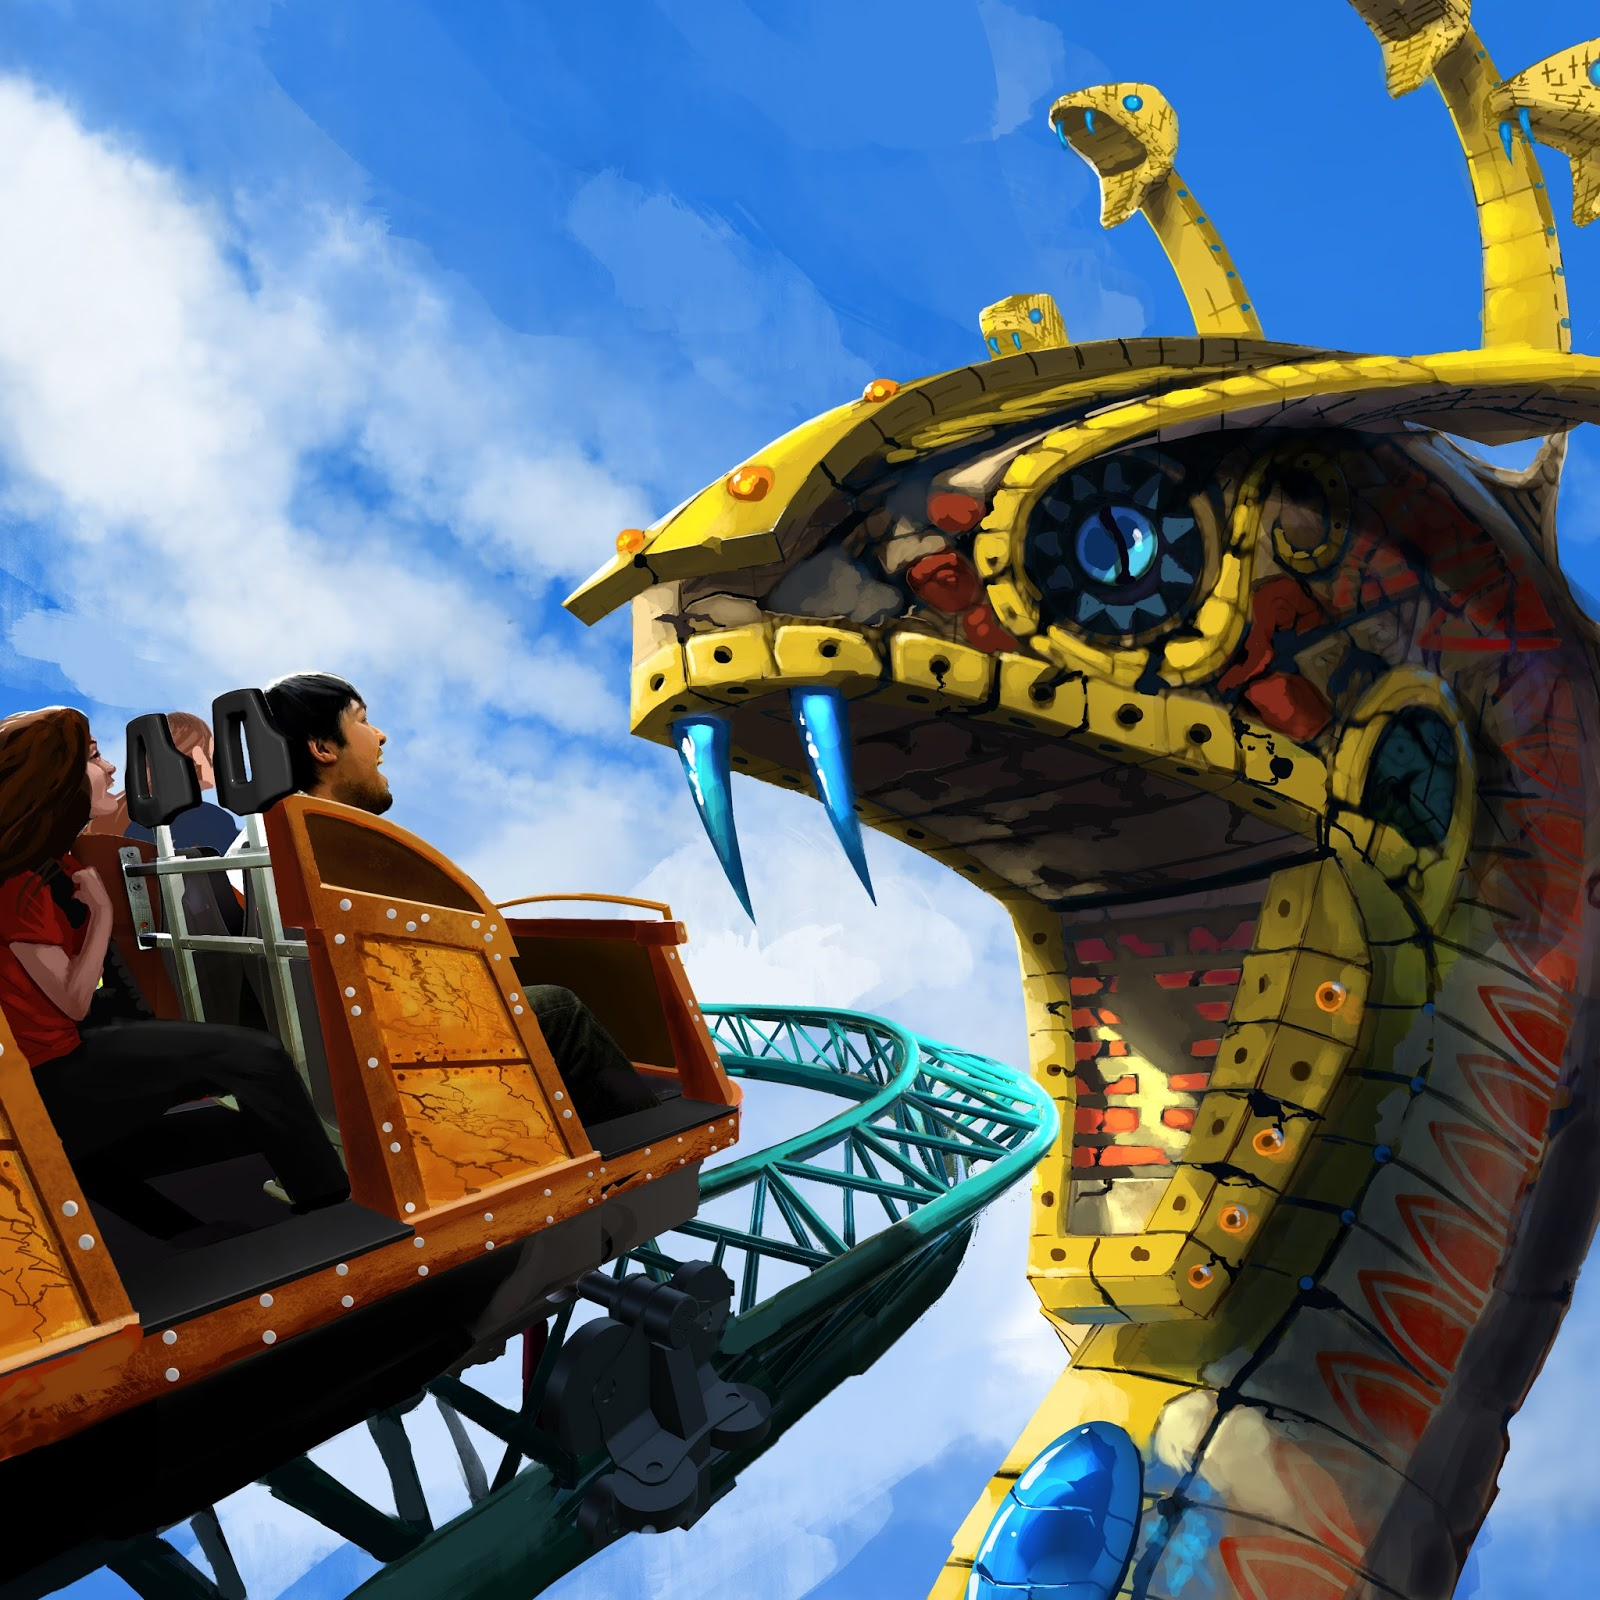 Newsplusnotes Get Caught In The Cobra 39 S Curse At Busch Gardens Tampa In 2016